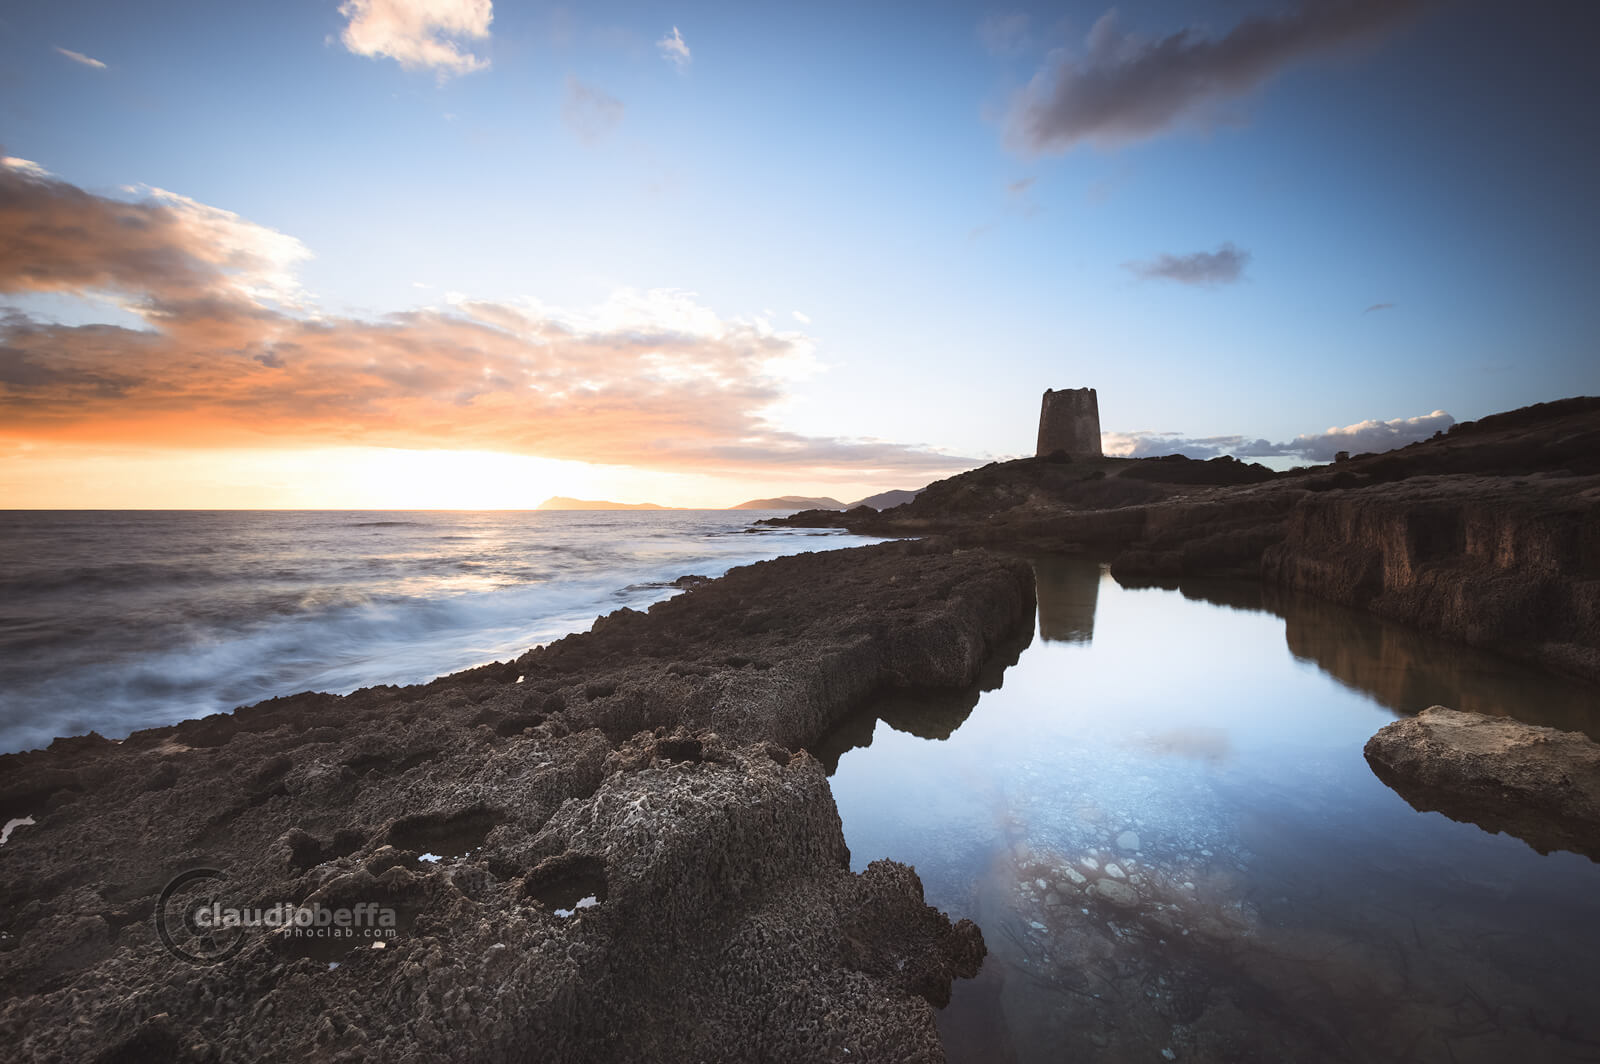 Guarding the pool, sunset, quarry, tower, pool, seascape, sea, sky, clouds, mirror, long exposure